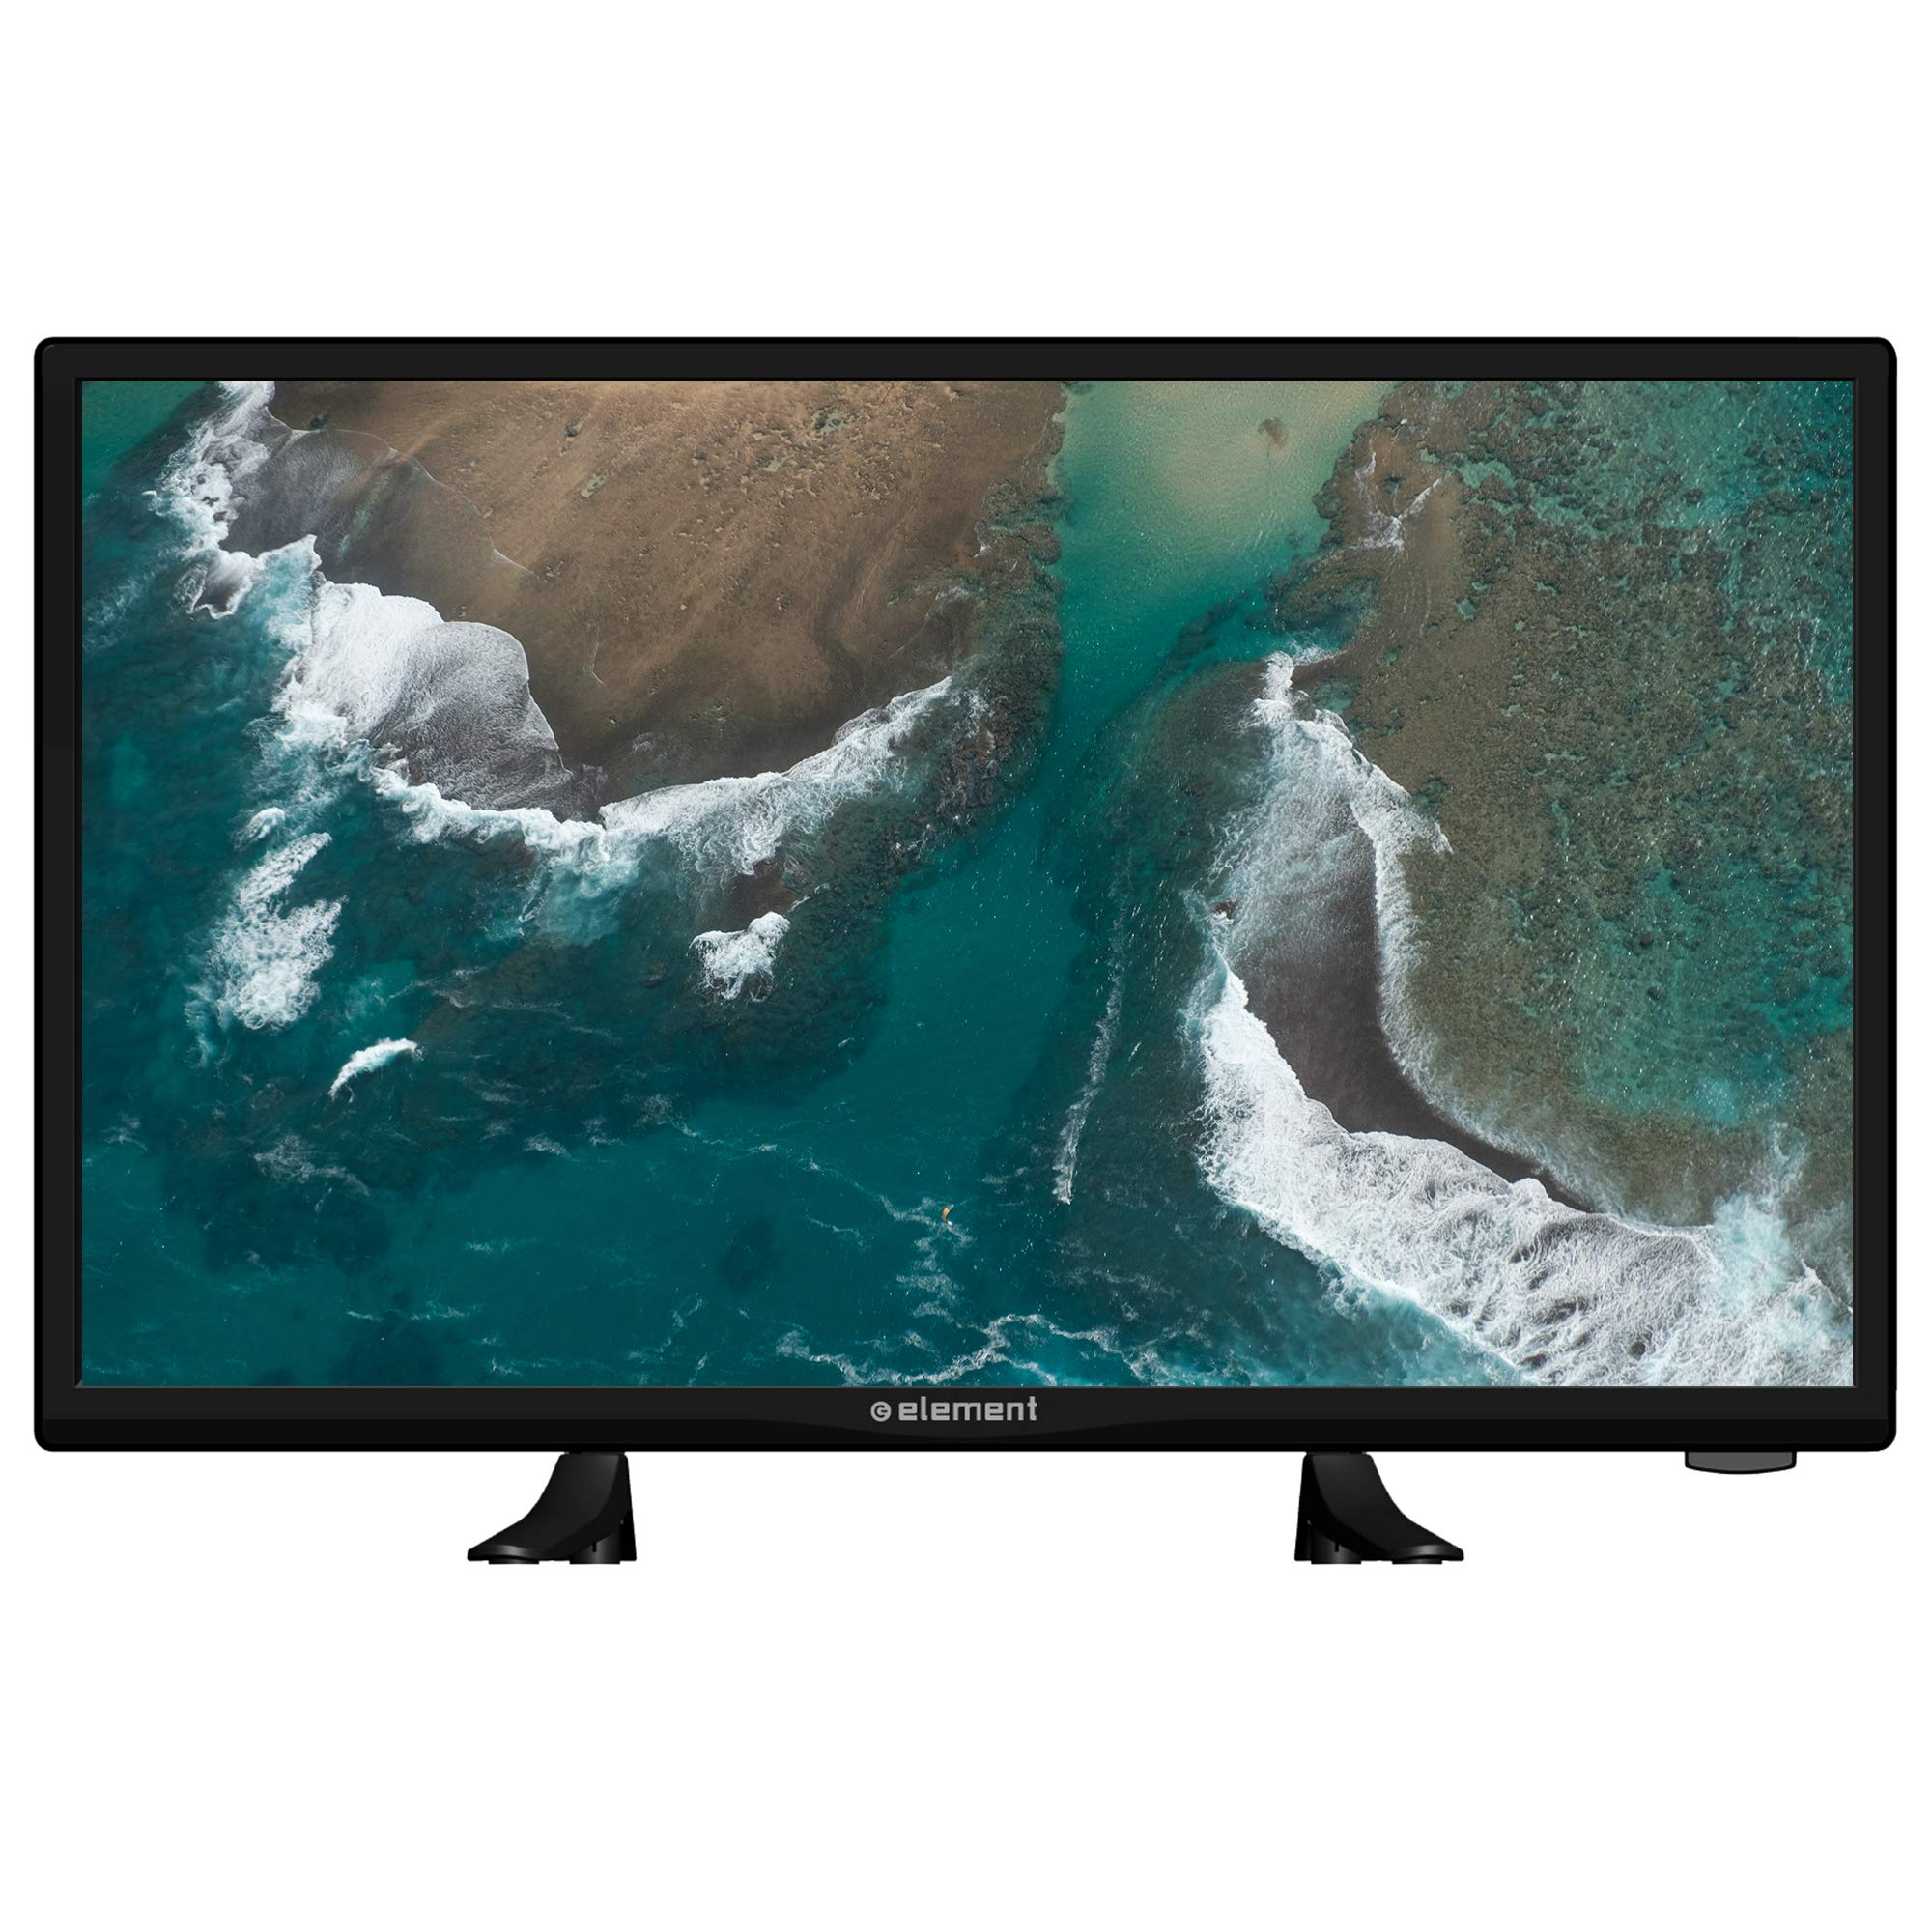 Element ELEFW248R 24in 720p HDTV (Renewed)